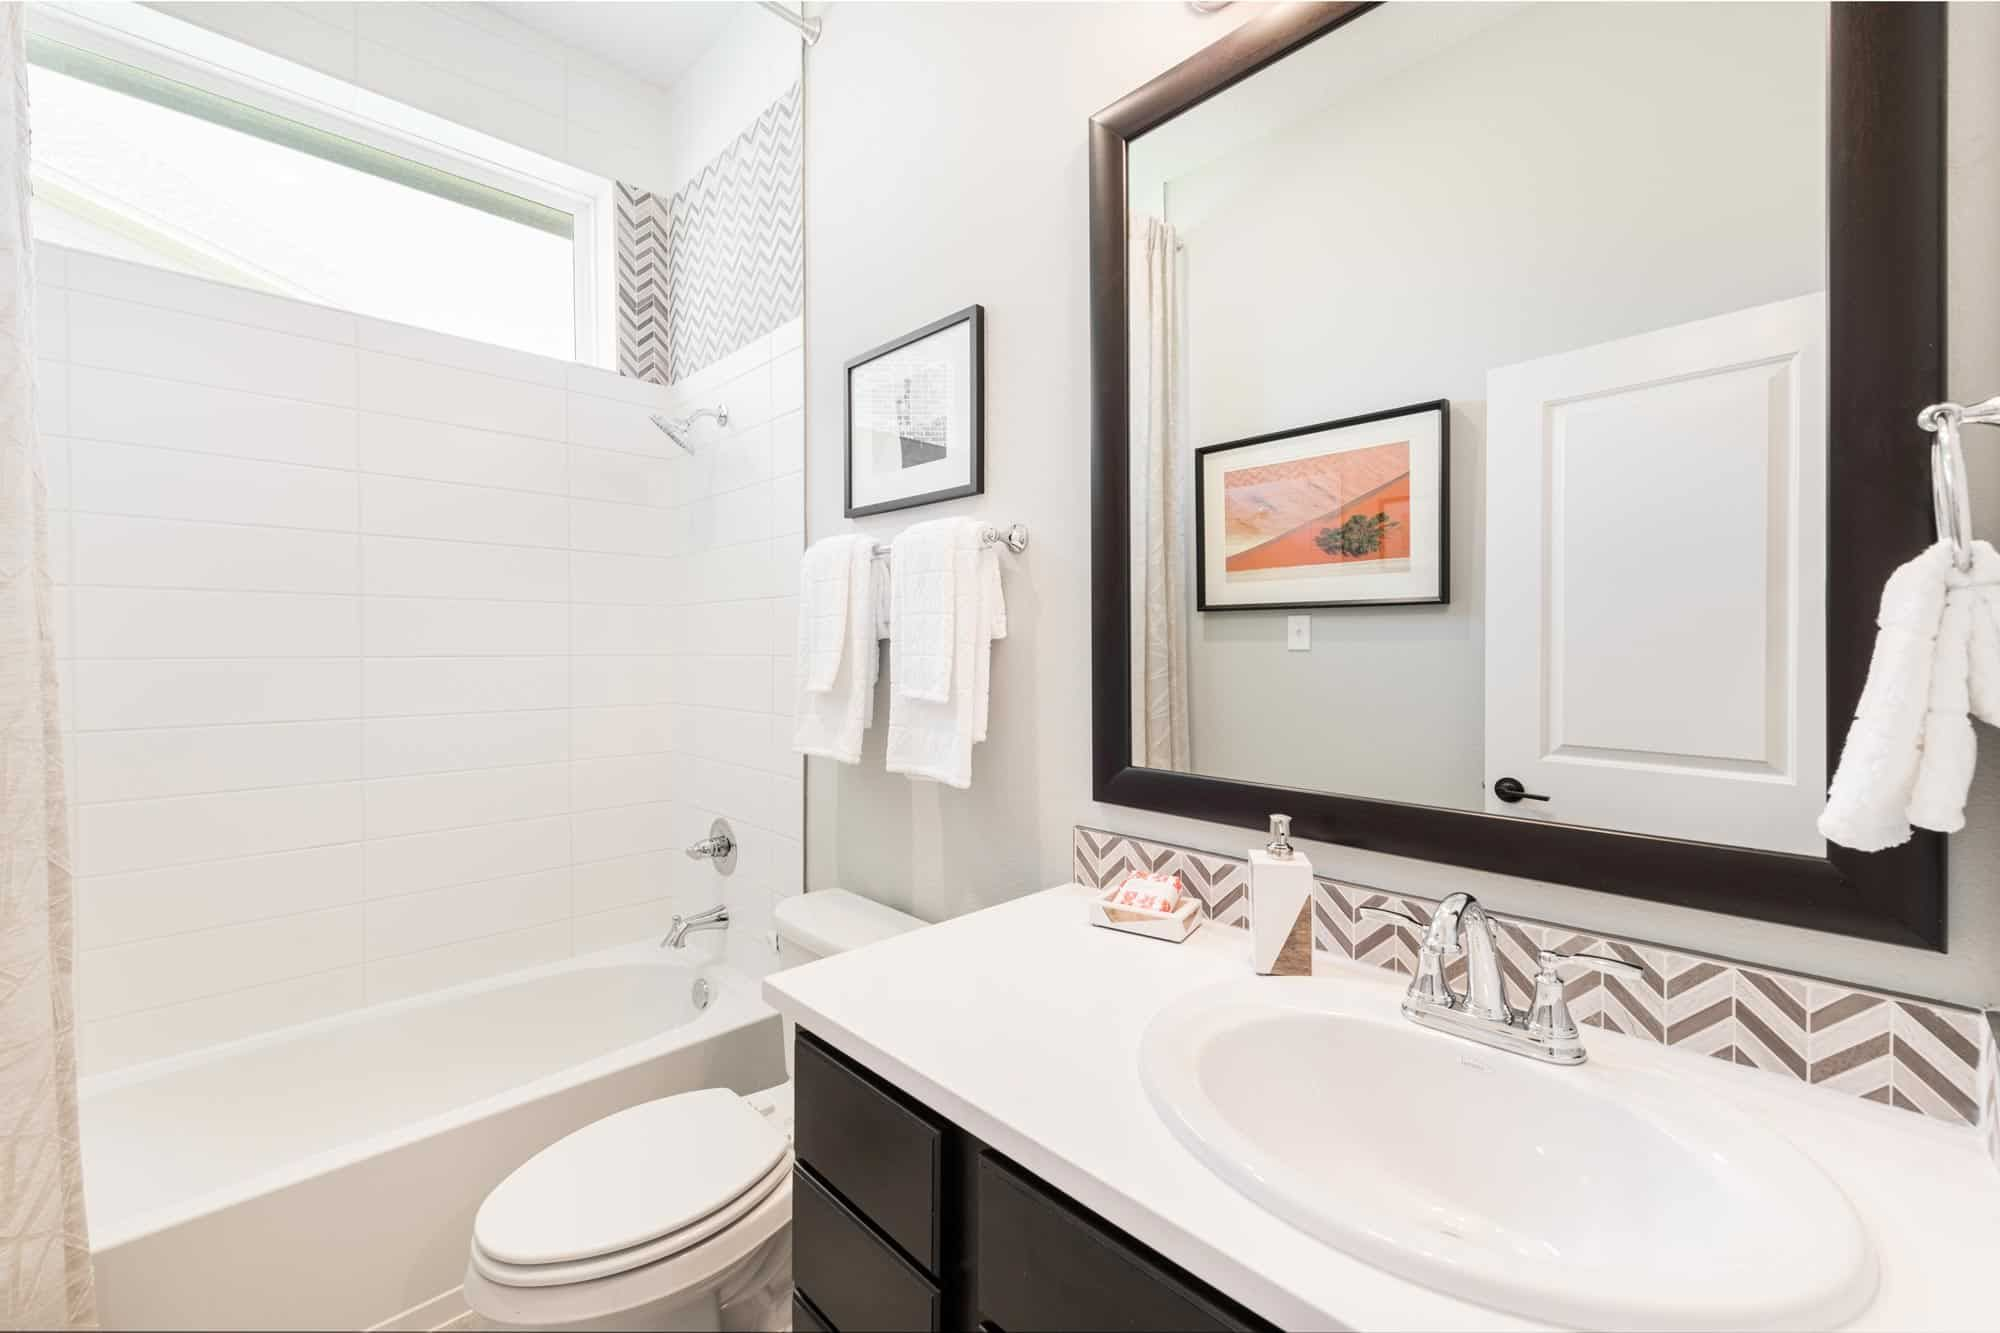 Bathroom featured in the Harrier By Tri Pointe Homes in Houston, TX